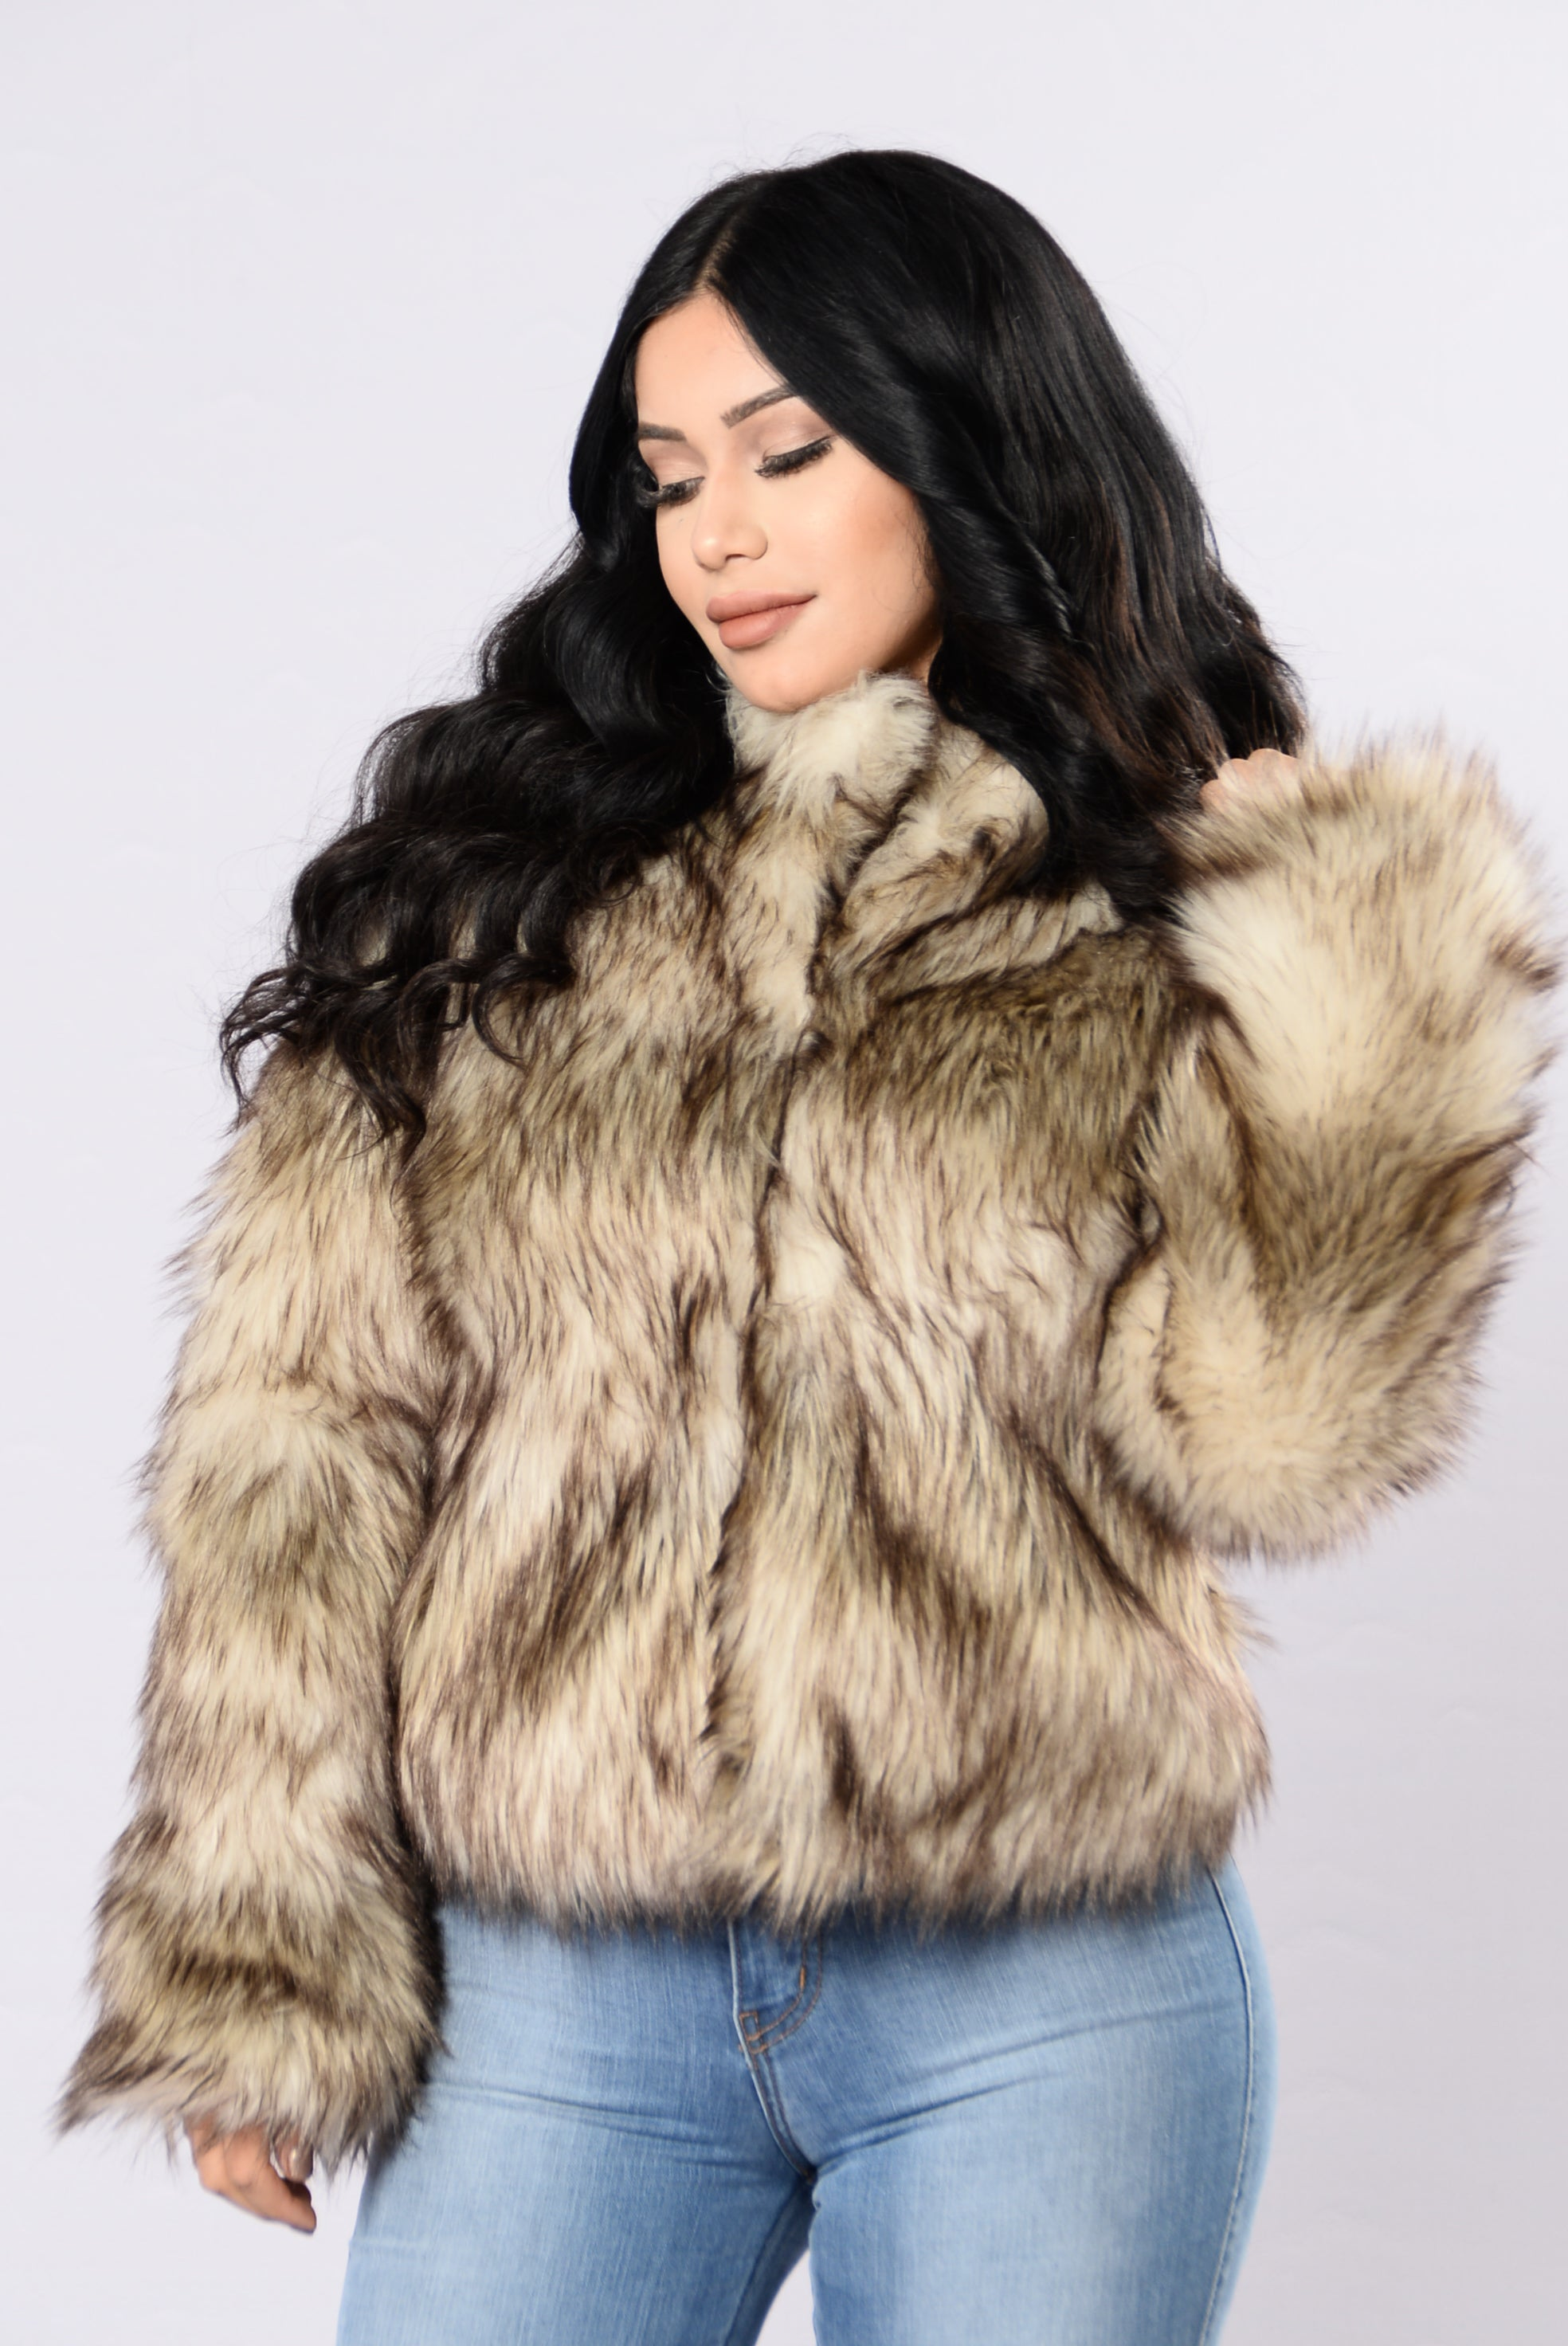 We have a large range of ladies Mink Fur Coats, Fox Fur Coats, Rabbit Fur Coats, along with Shearling Sheepskin, Mongolian Lamb, and Raccoon Fur Jackets and Vests. Each piece is as ravishing as they are warm, because nothing offers the same kind of cozy warmth that these thick, naturally insulated, sumptuous pelts do/5().